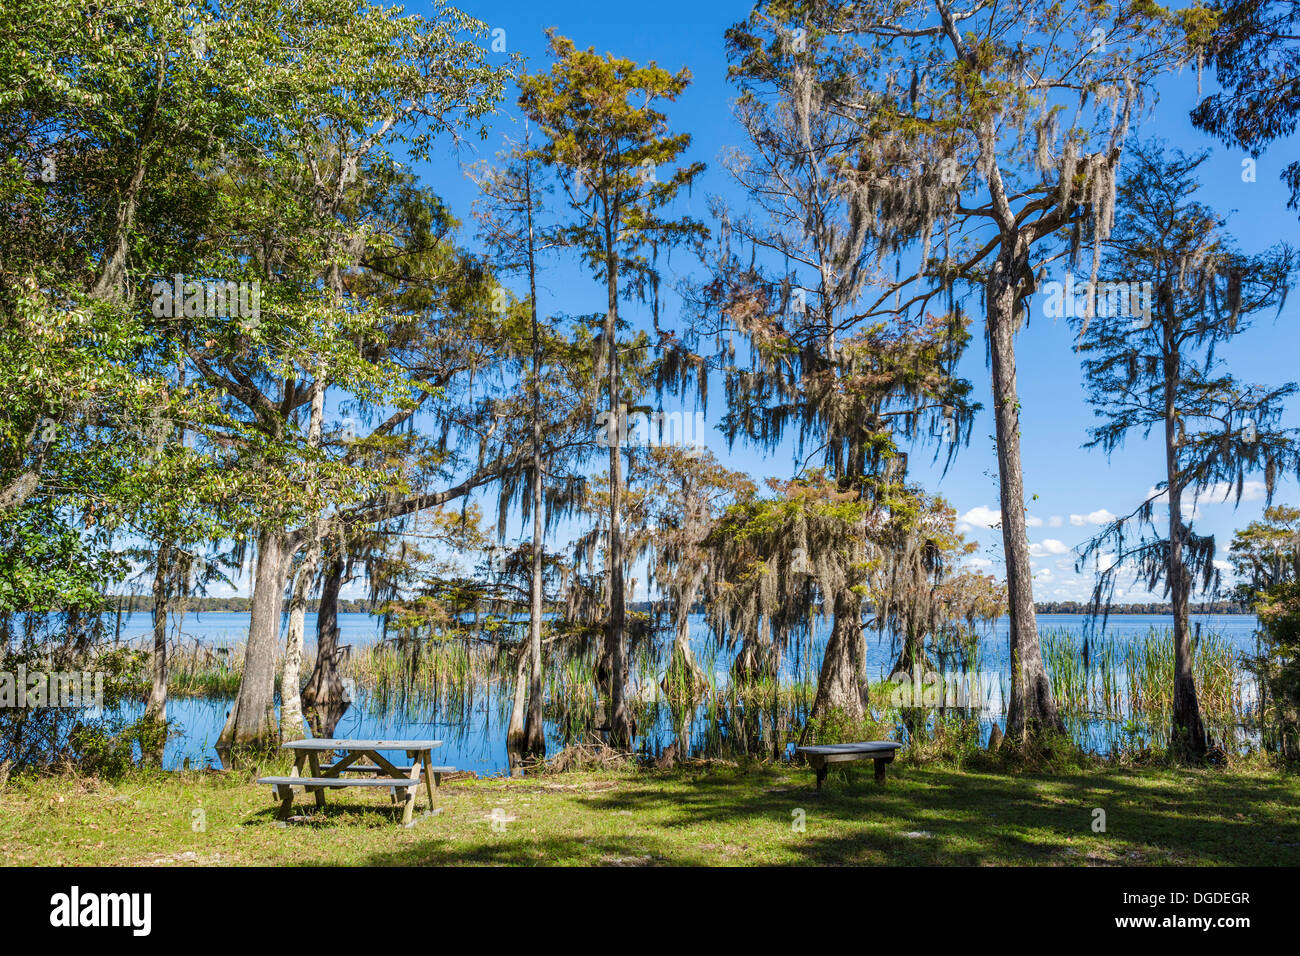 Picnic area at Lake Russell, Nature Conservancy Disney Wilderness Preserve, Poinciana, Kissimmee, near Orlando, Florida, USA - Stock Image